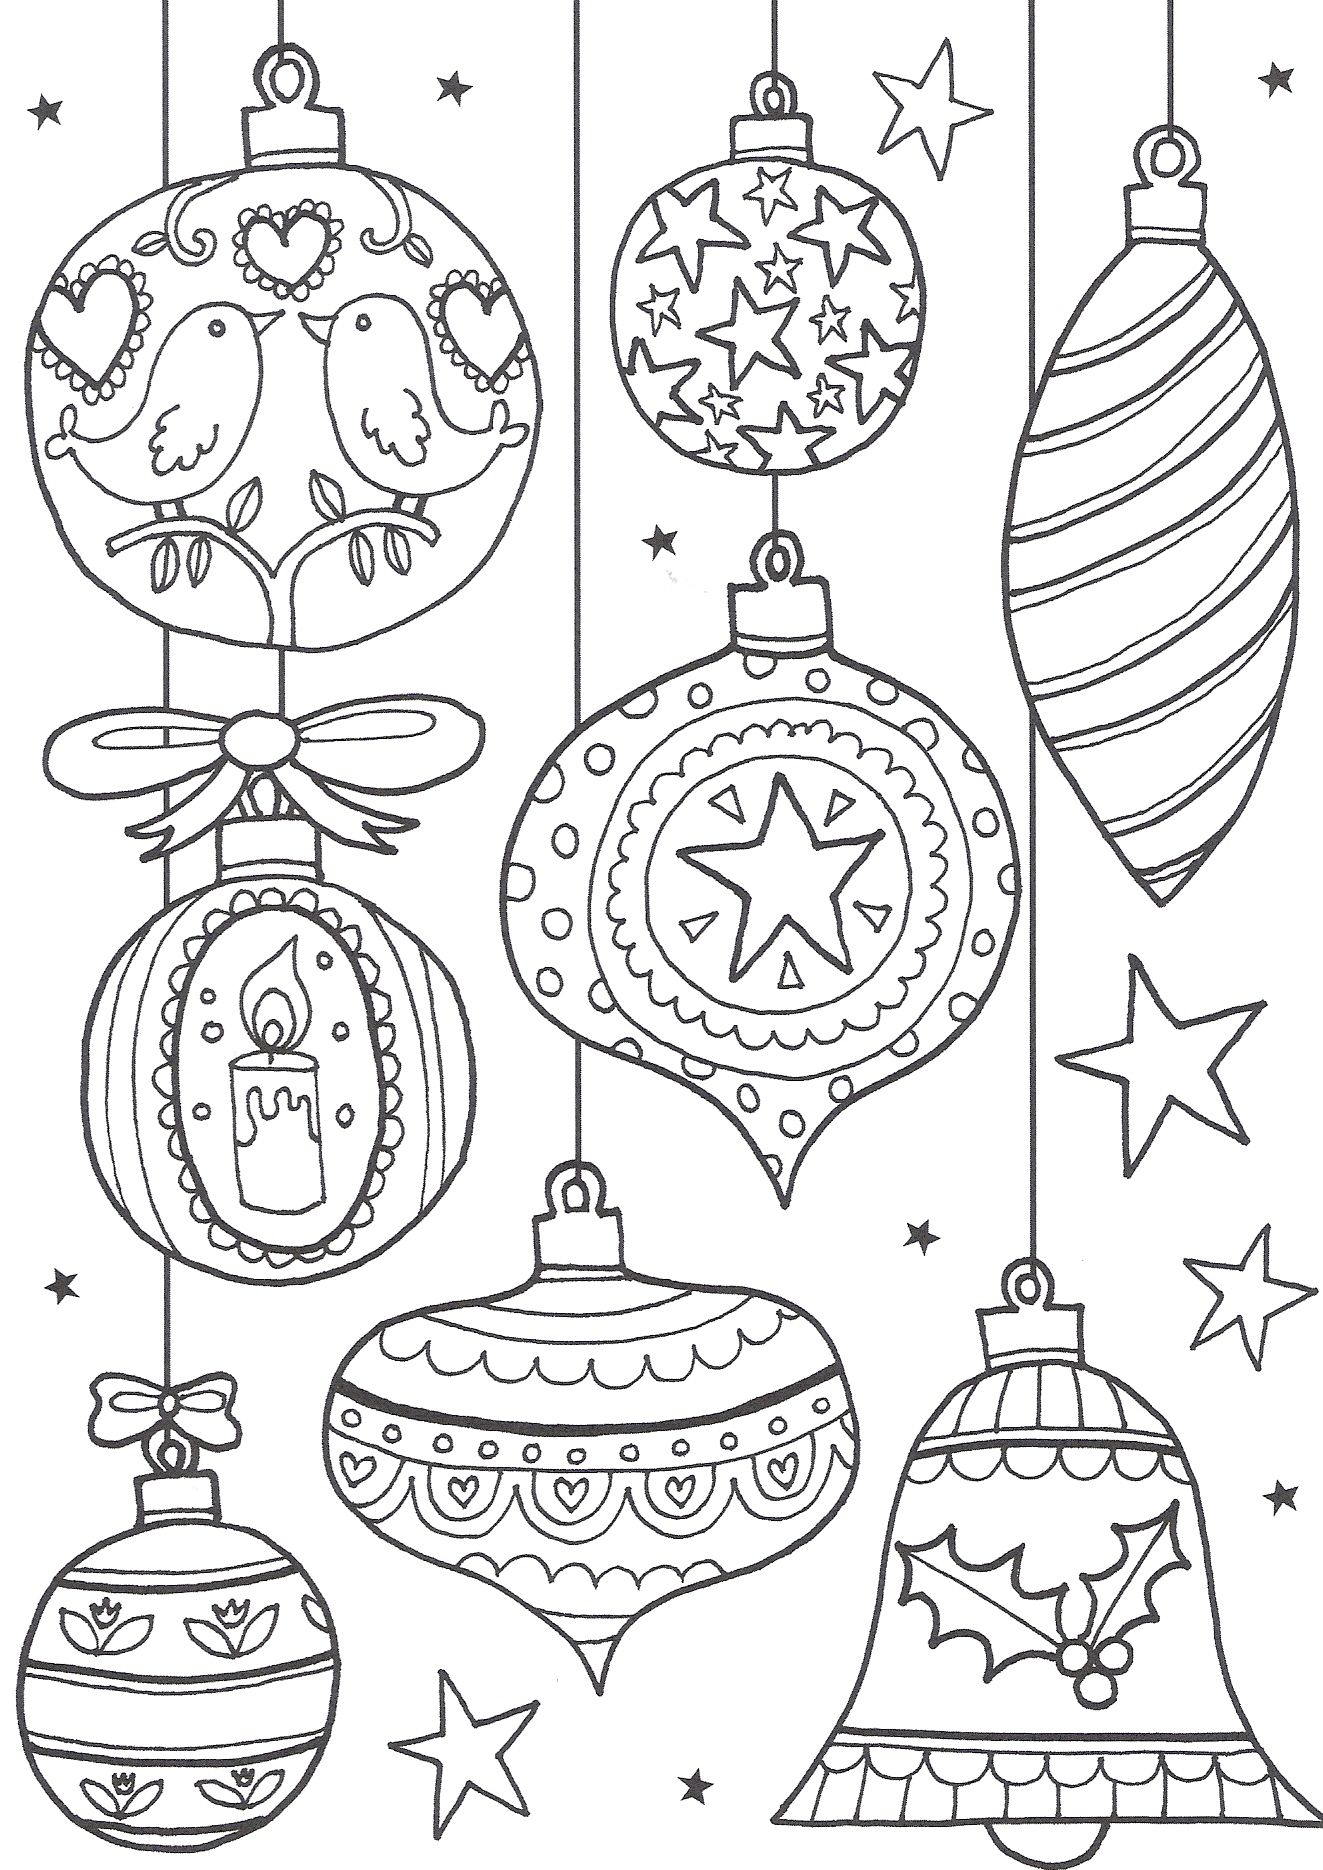 Christmas Coloring And Activity Pages With Free Colouring For Adults The Ultimate Roundup